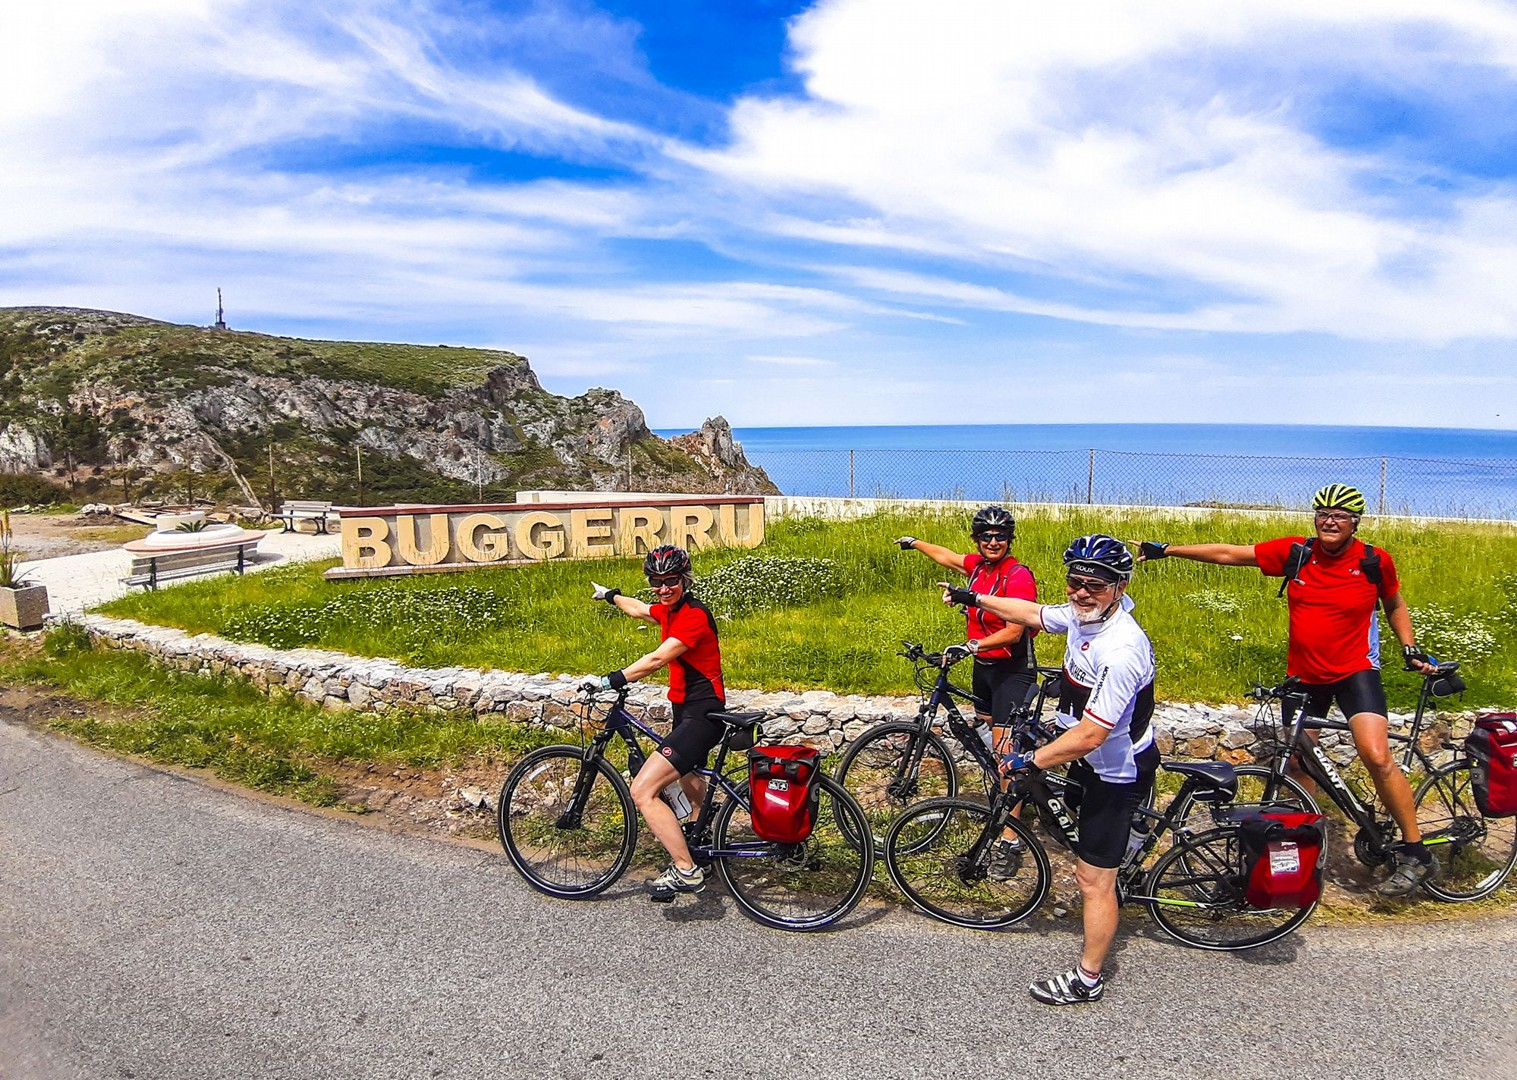 sardinia-buggerru-guided-leisure-cycling-holiday-with-saddle-skedaddle.jpg - Italy - Sardinia - Island Flavours - Guided Leisure Cycling Holiday - Italia Leisure and Family Cycling